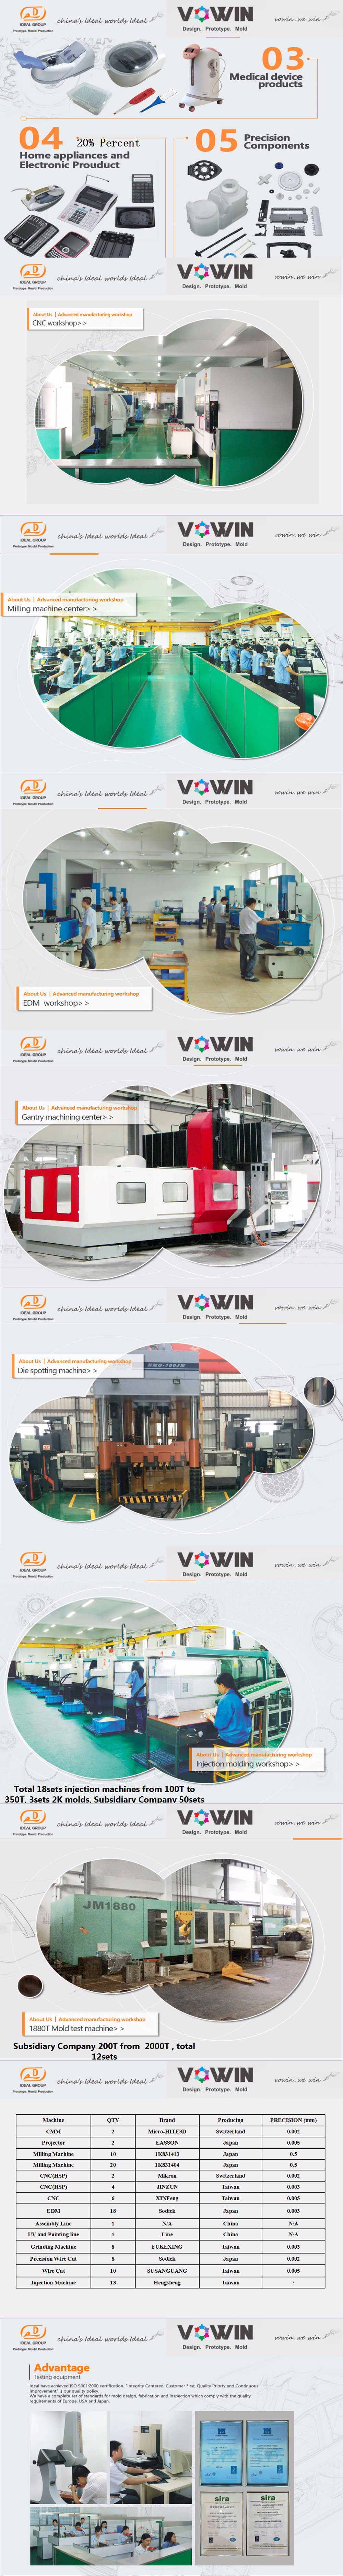 China Manufacturer Make Cheap Price Plastic Injection Mold for Plastic Products